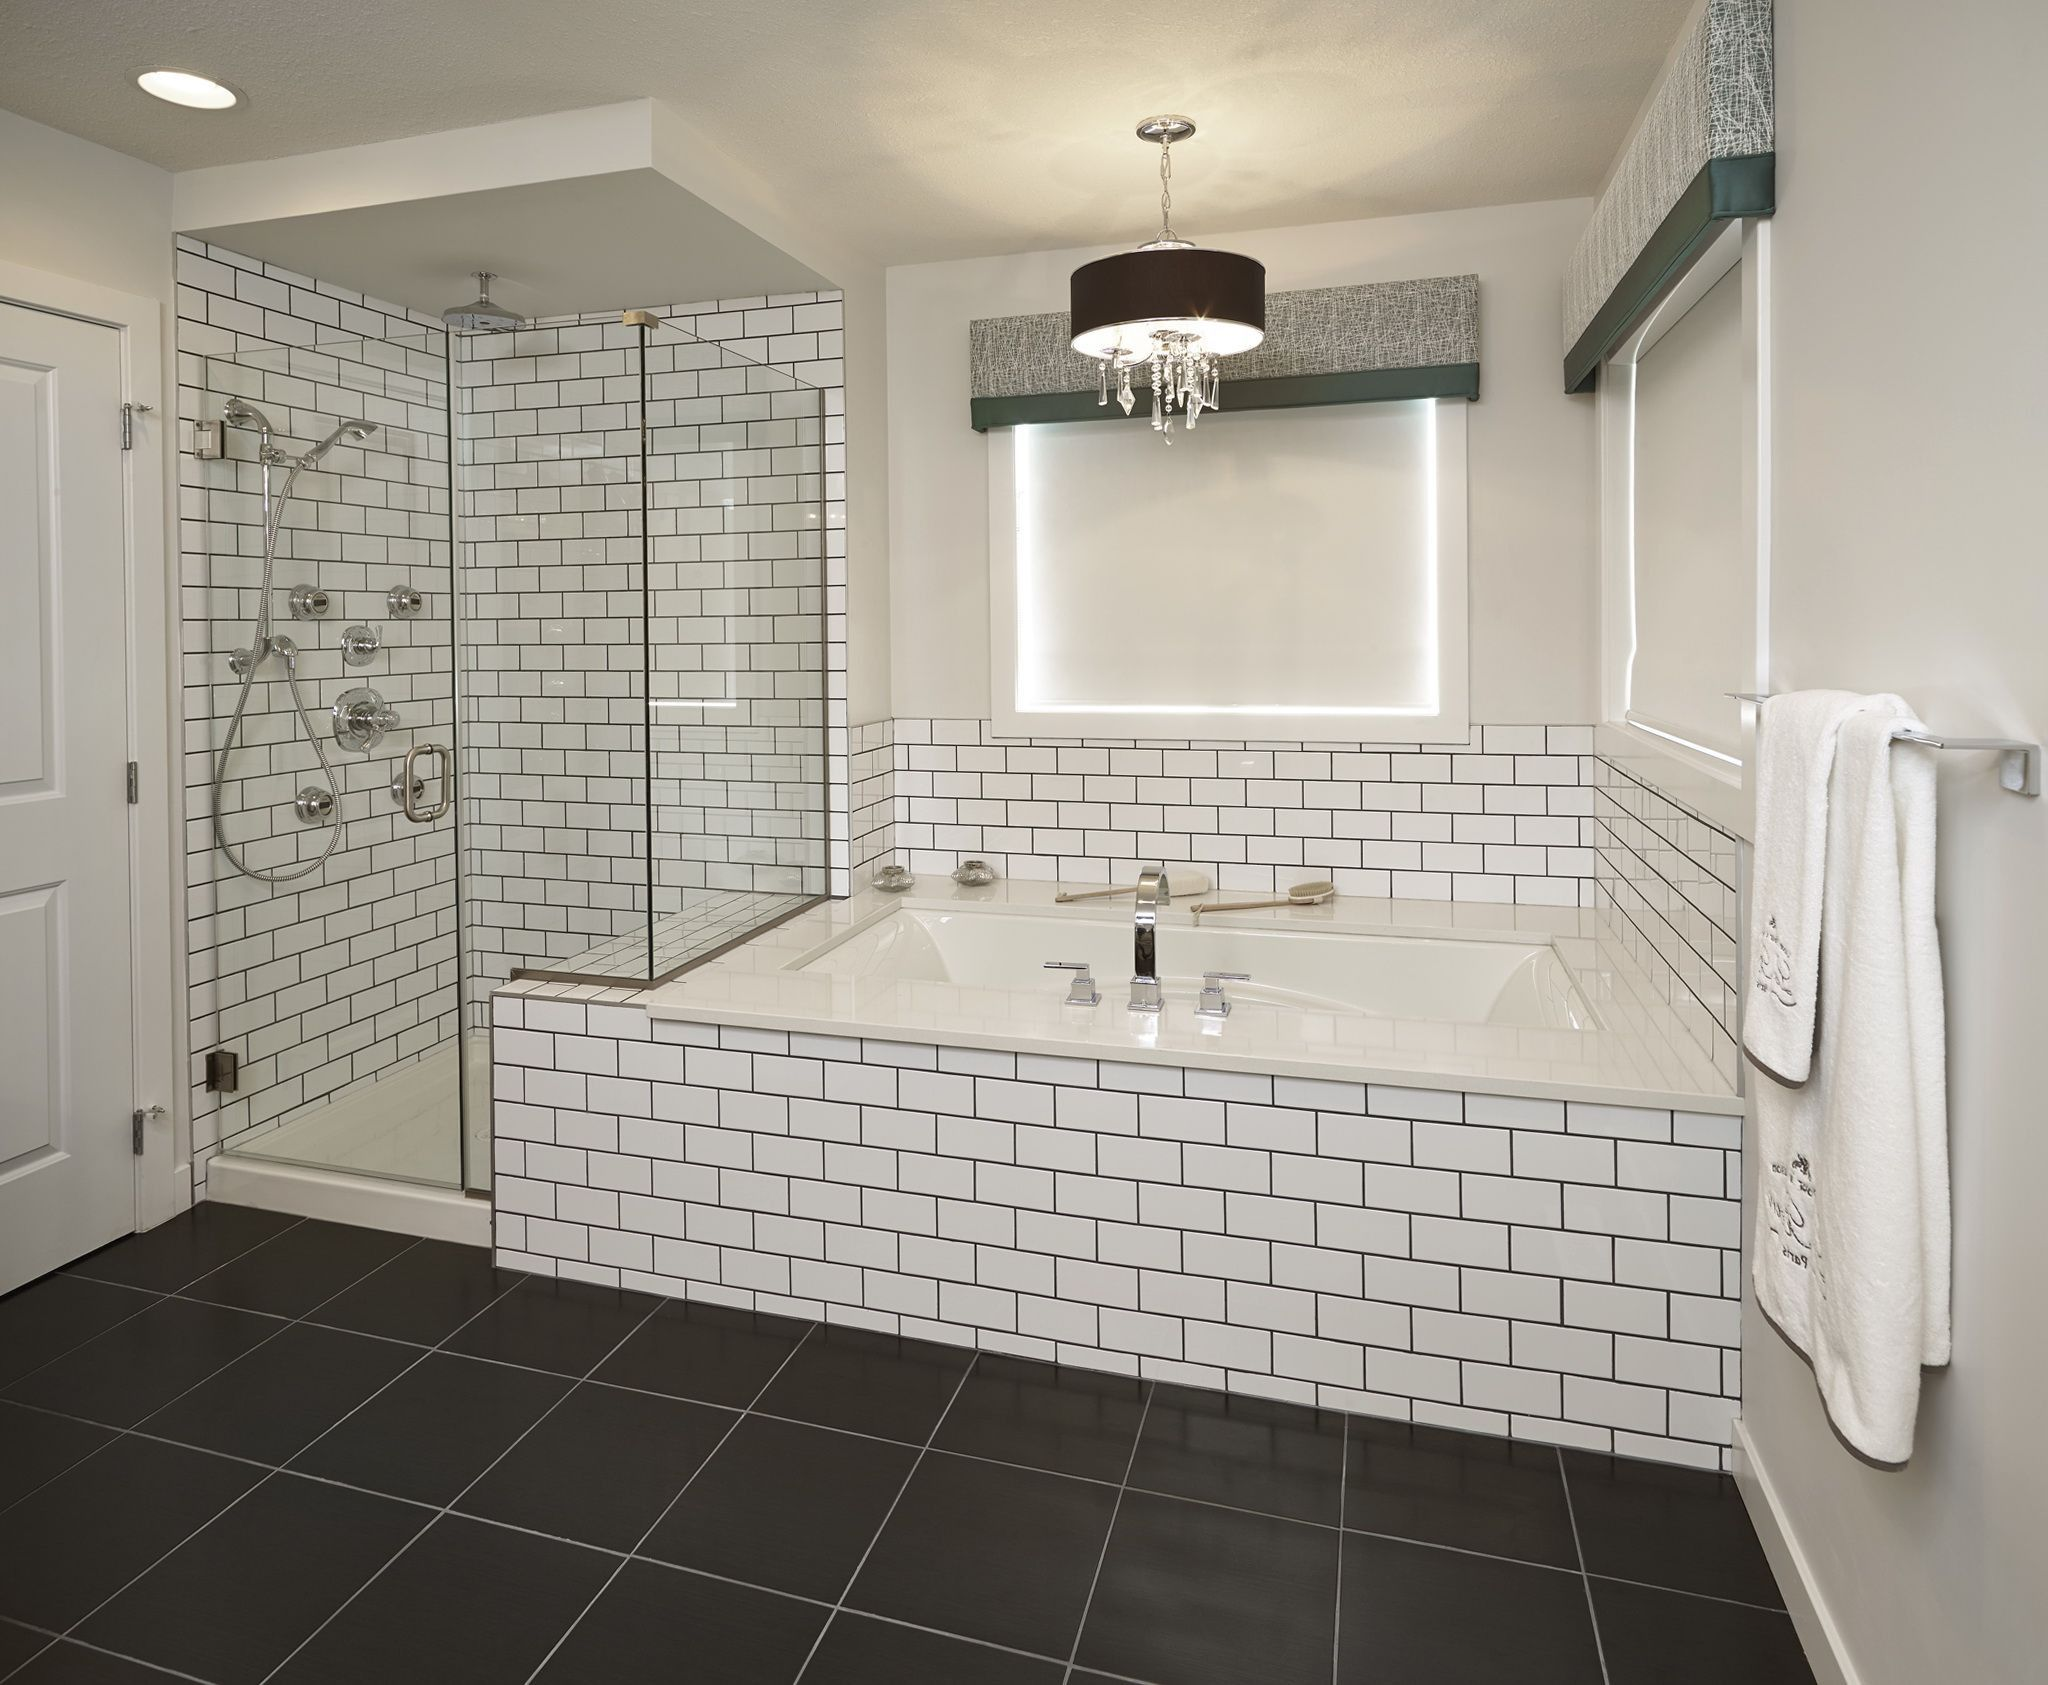 Bathrooms With White Subway Tile Best Of Subway Tile Bathroom